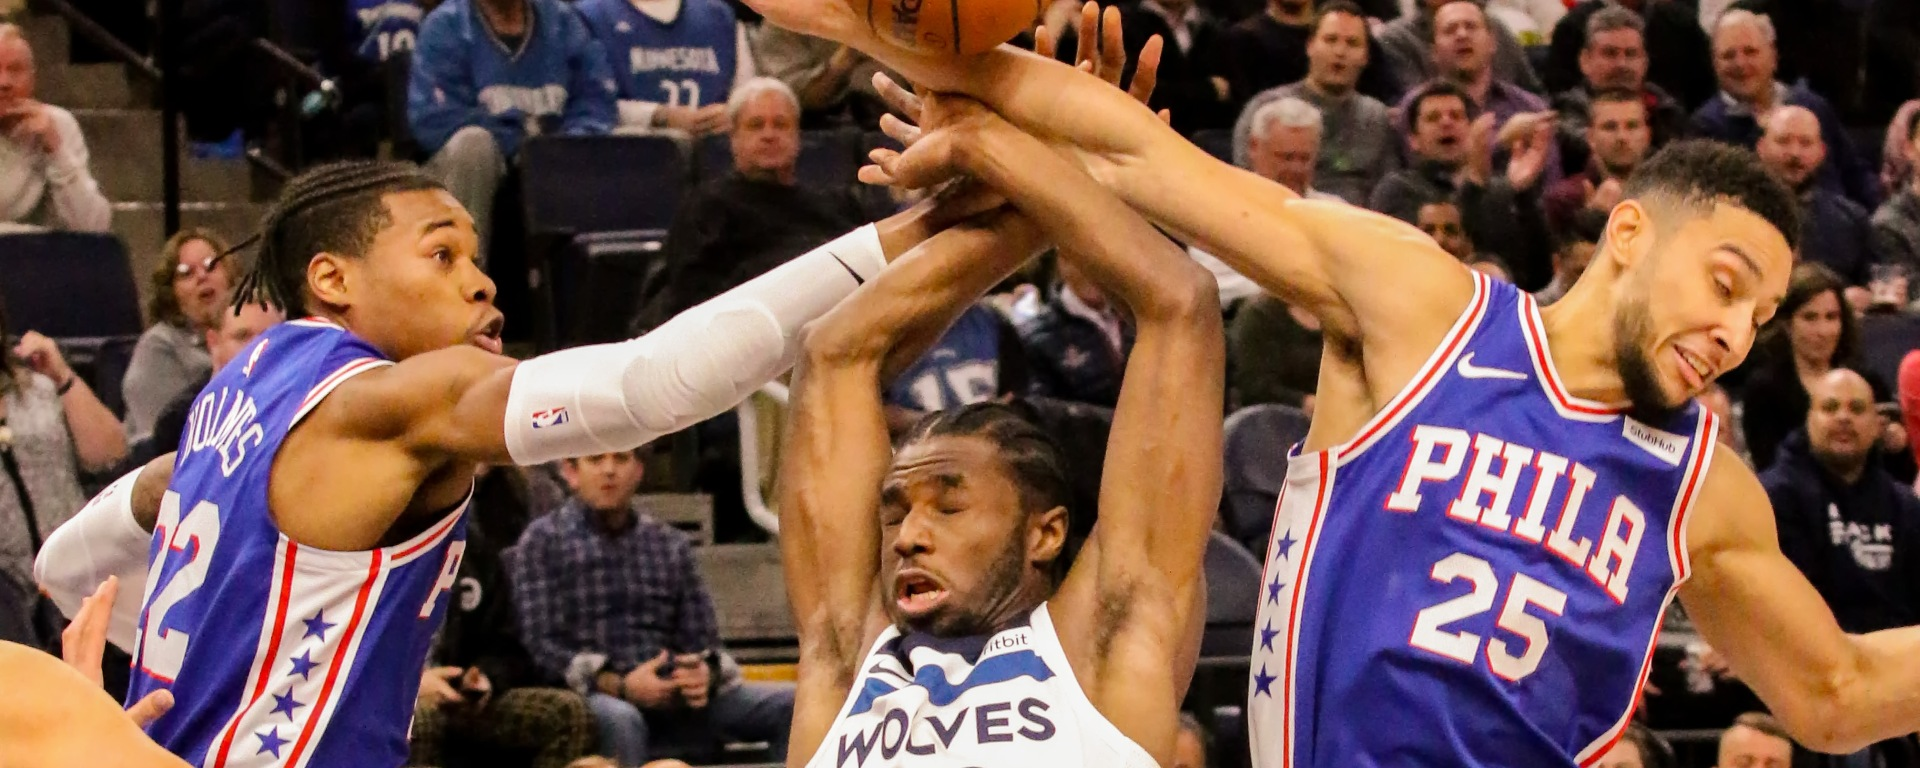 Photo Gallery: Wolves lose in OT to Sixers – Minnesota Score